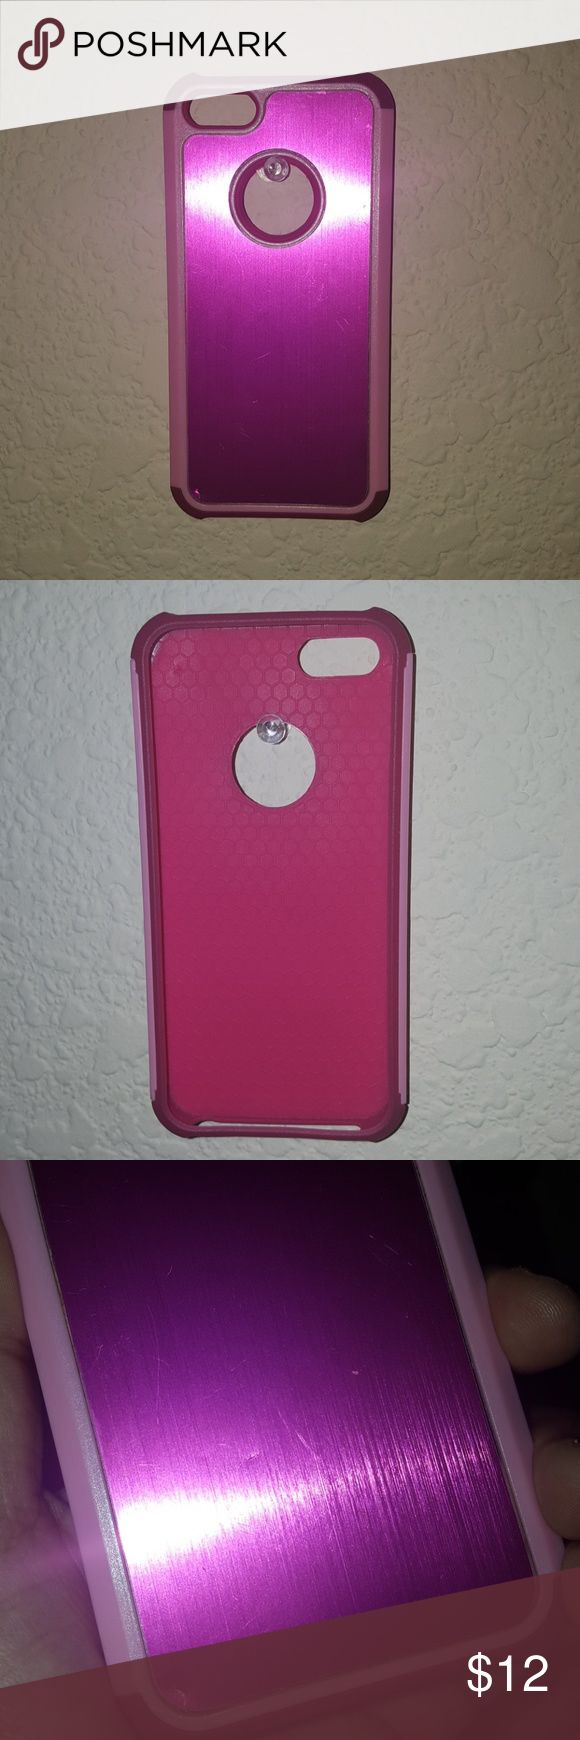 Pink 5S iPhone phone case Pink metallic phone case. For 5S iPhone . 2 part case. Slight scratches and dents in the hot pink metallic area. Accessories Phone Cases